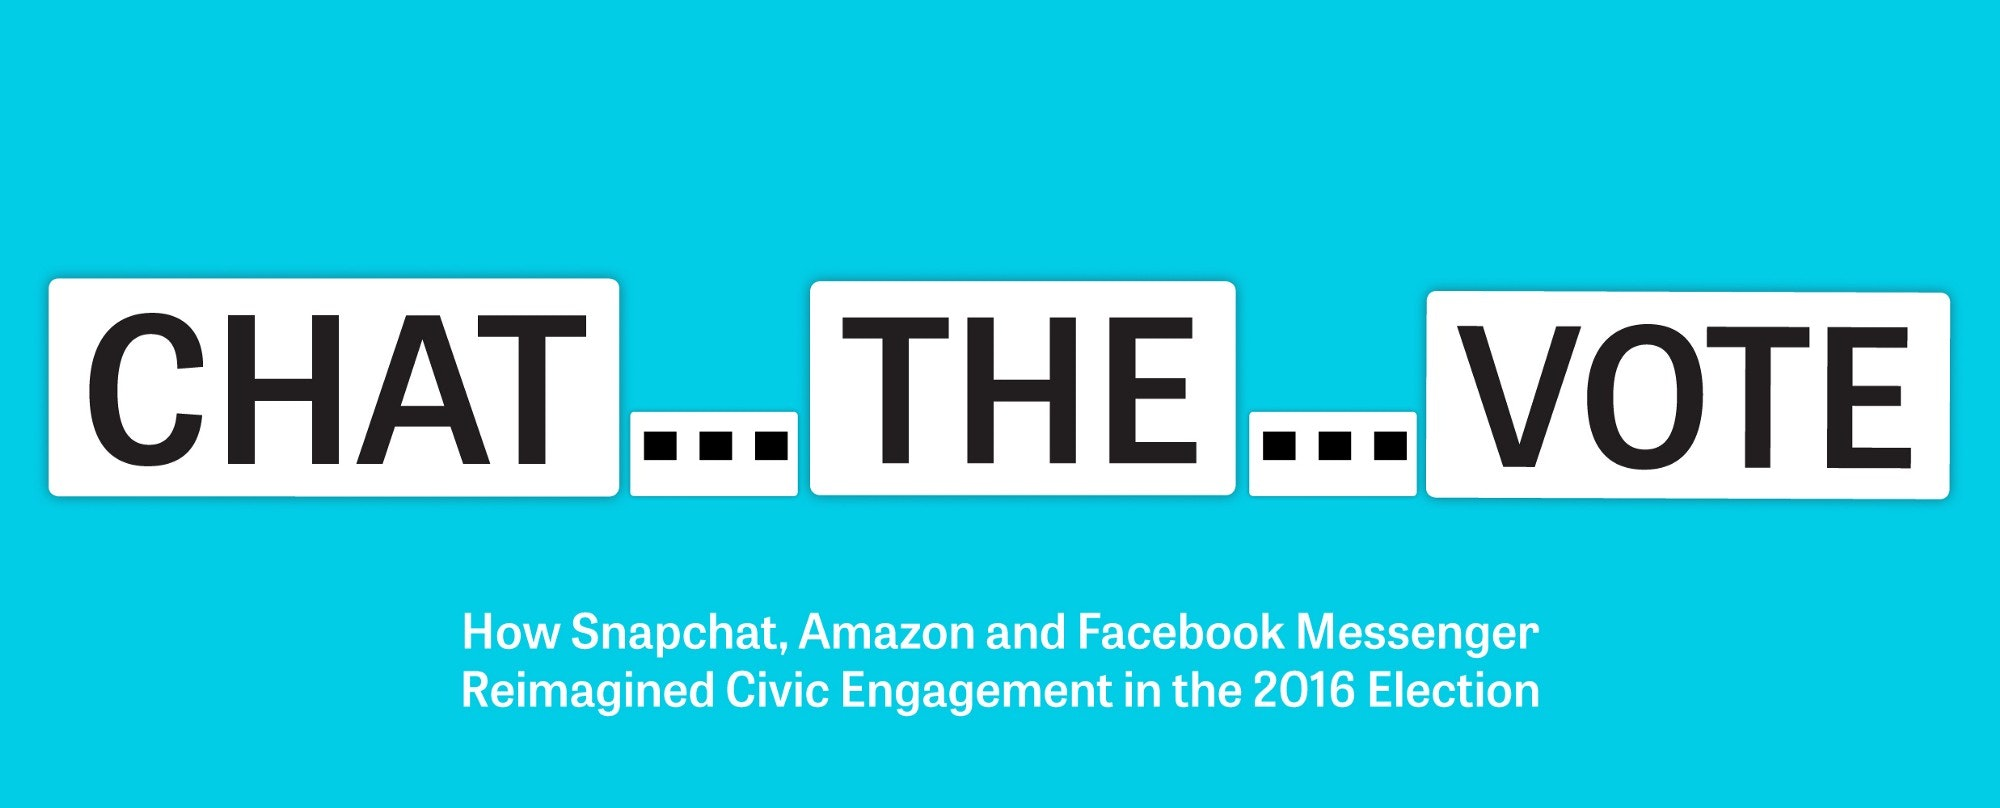 The New Normal? Civic Engagement via Chat